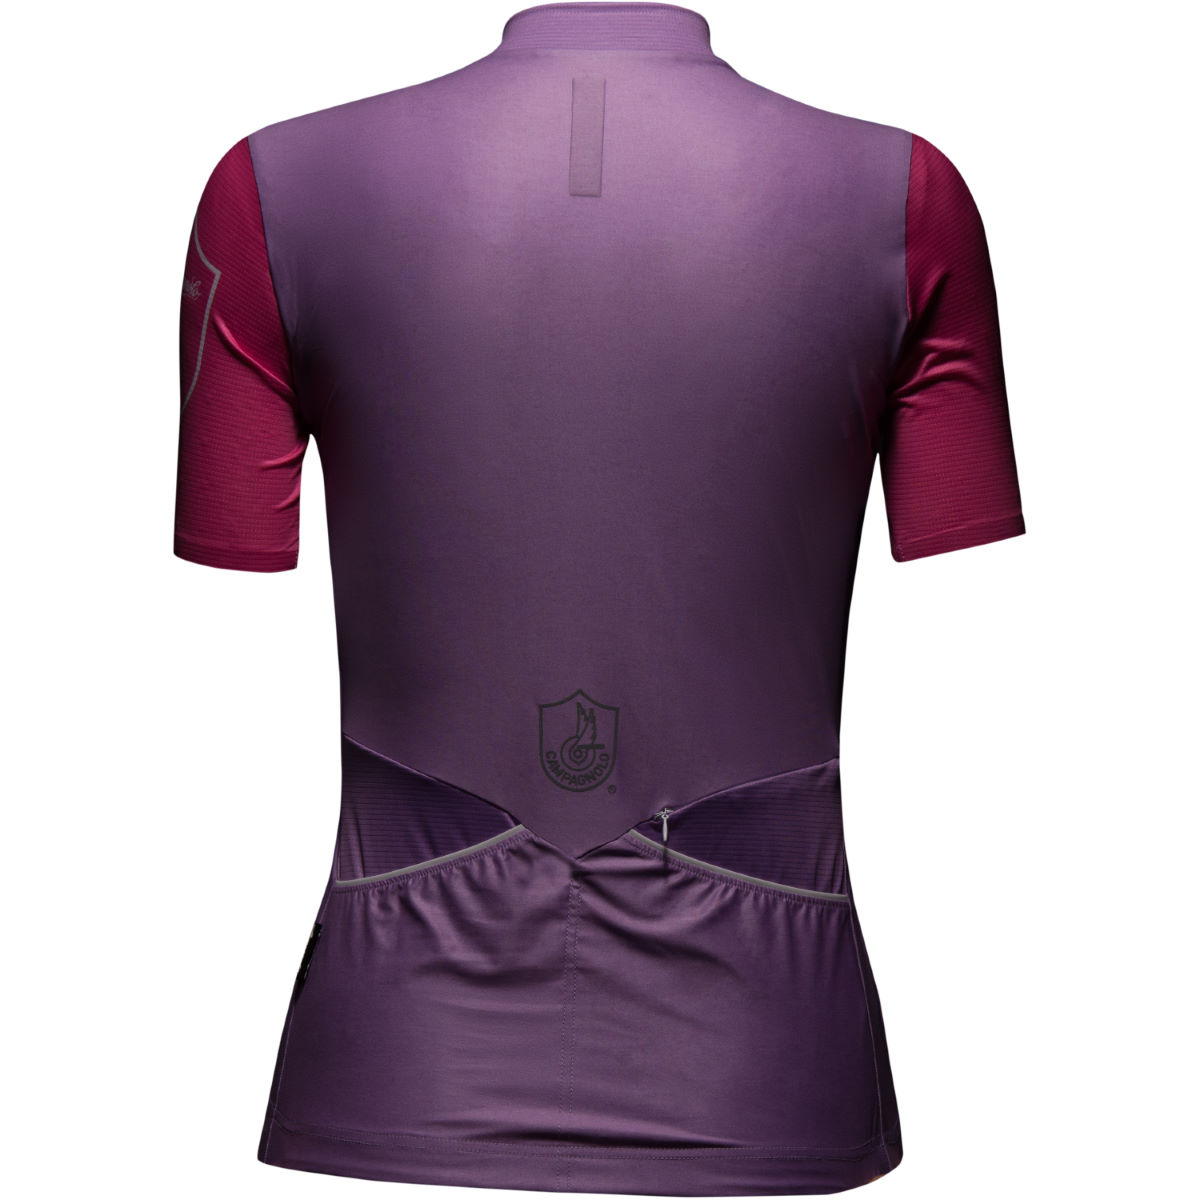 Campagnolo Women's Cobalto Jersey - M Pink